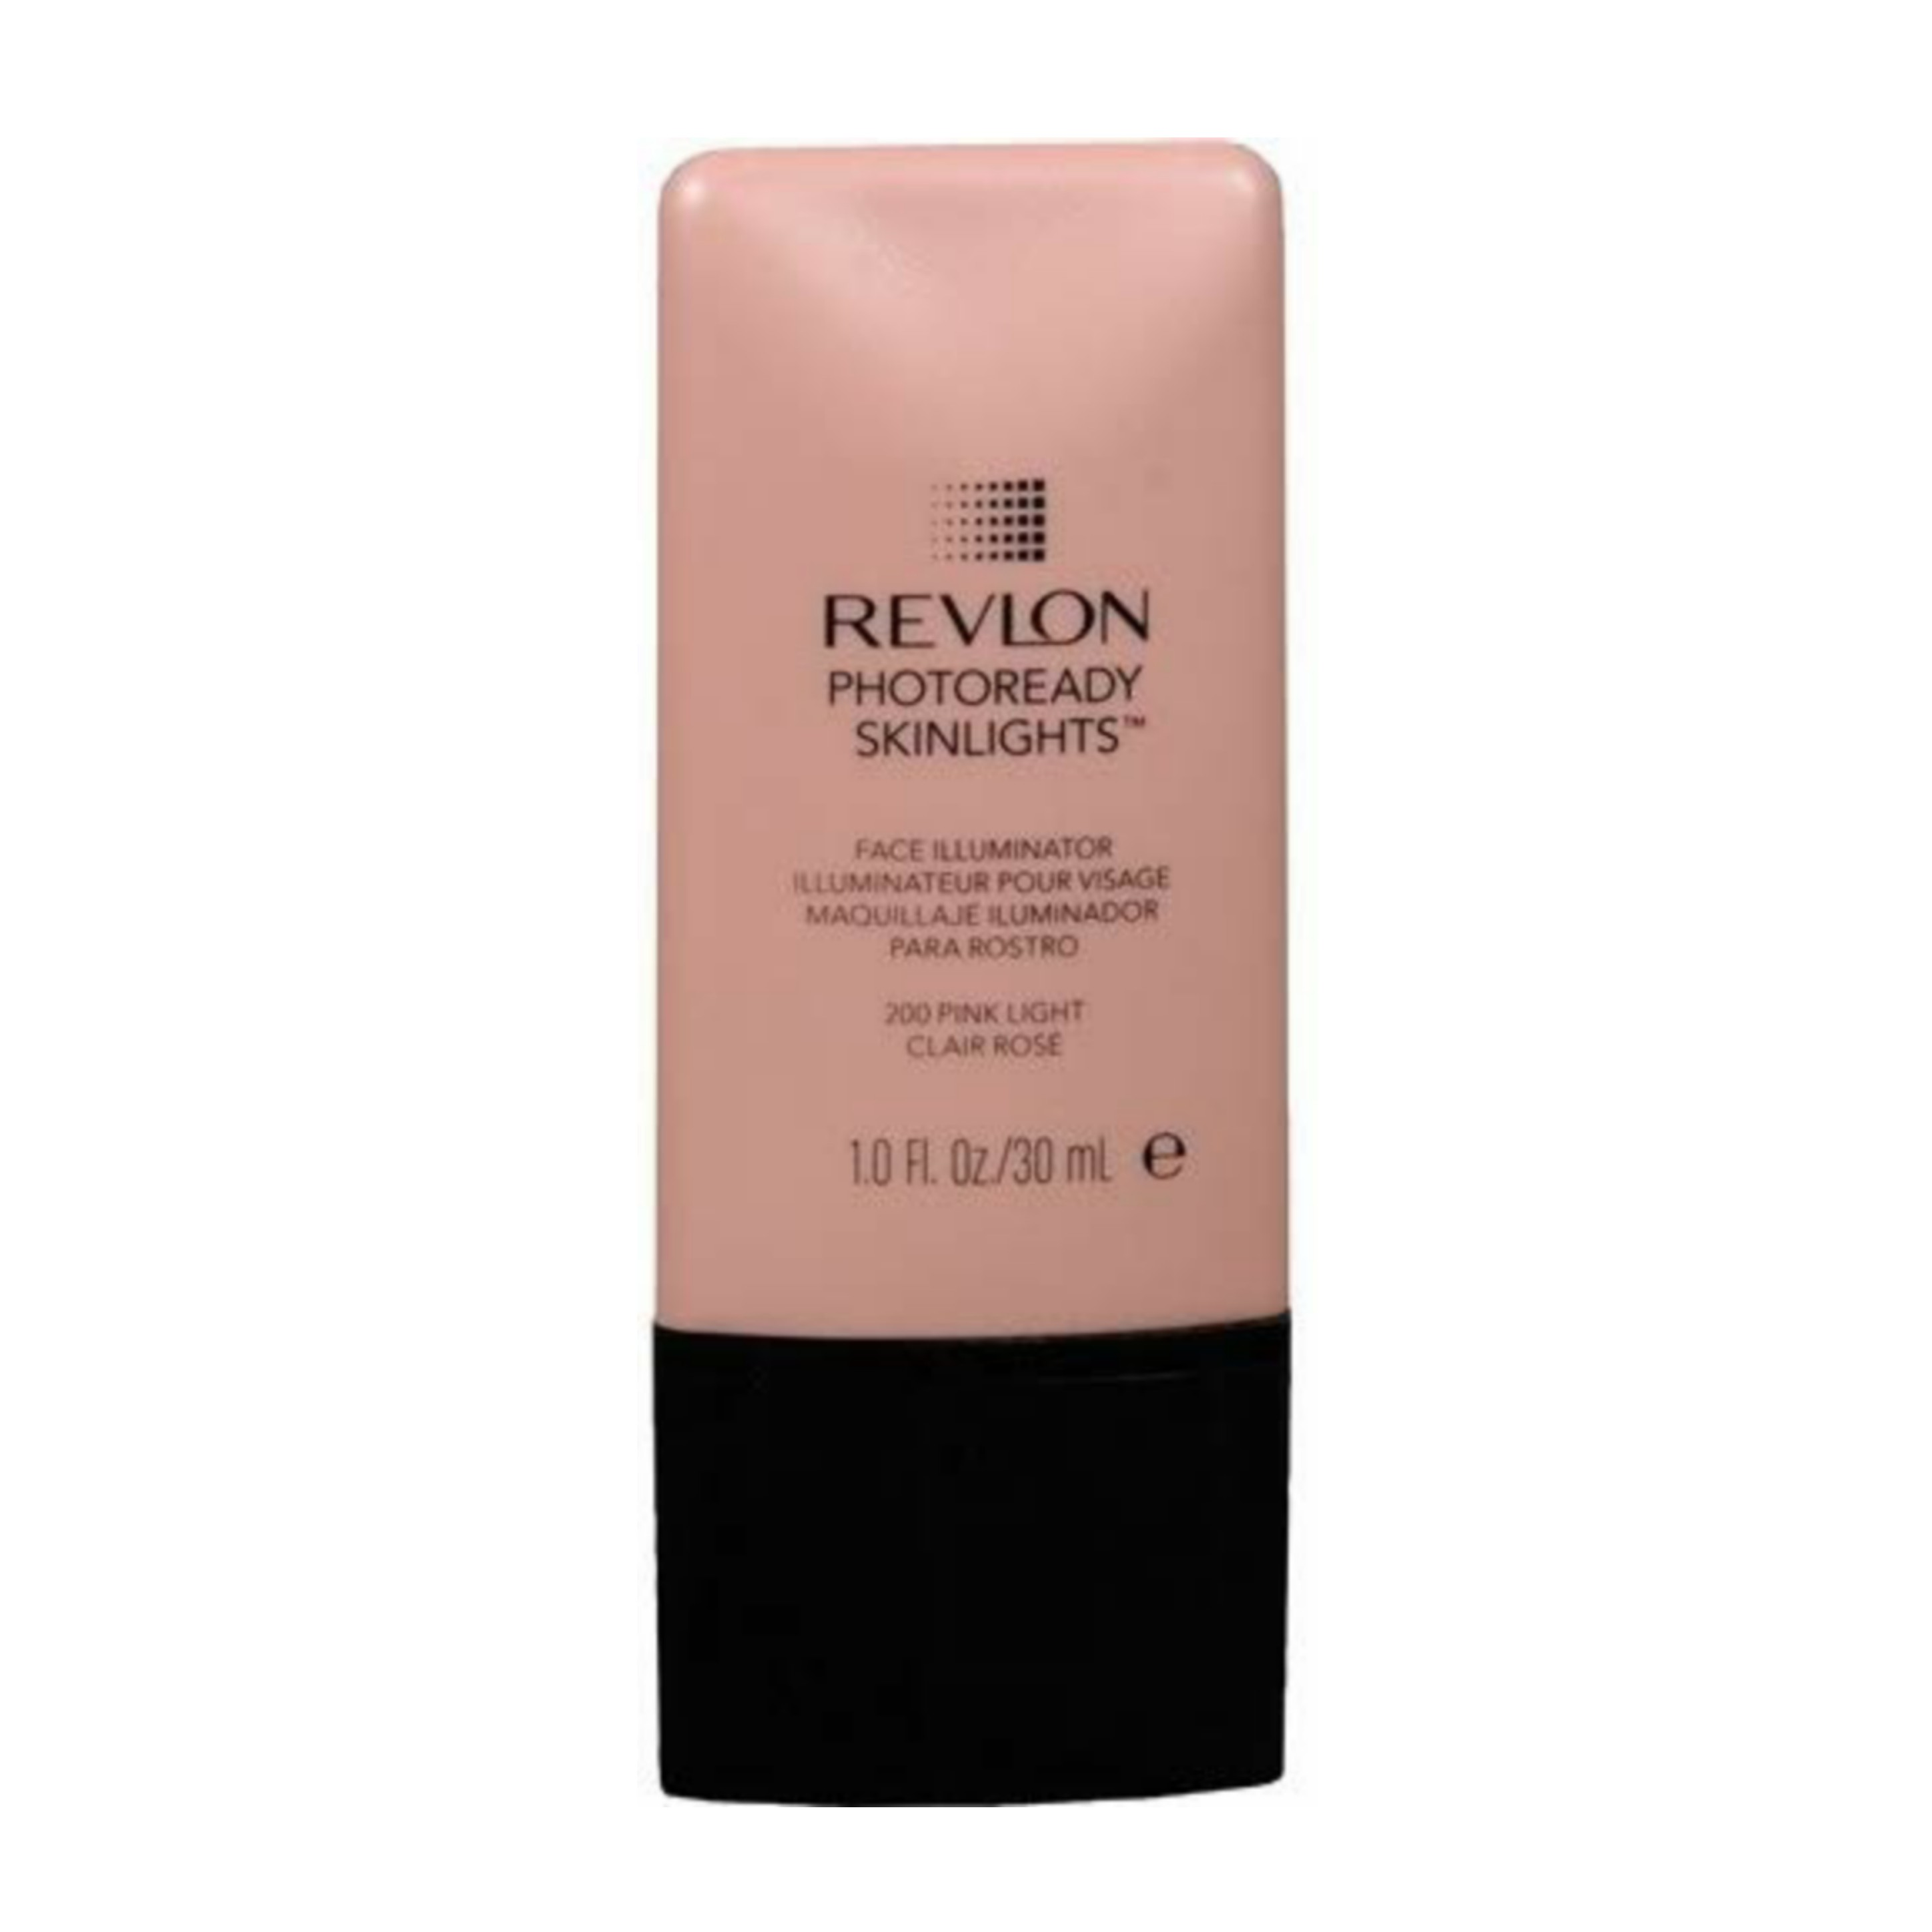 best dewy primer in India, Revlon illuminating face primer review